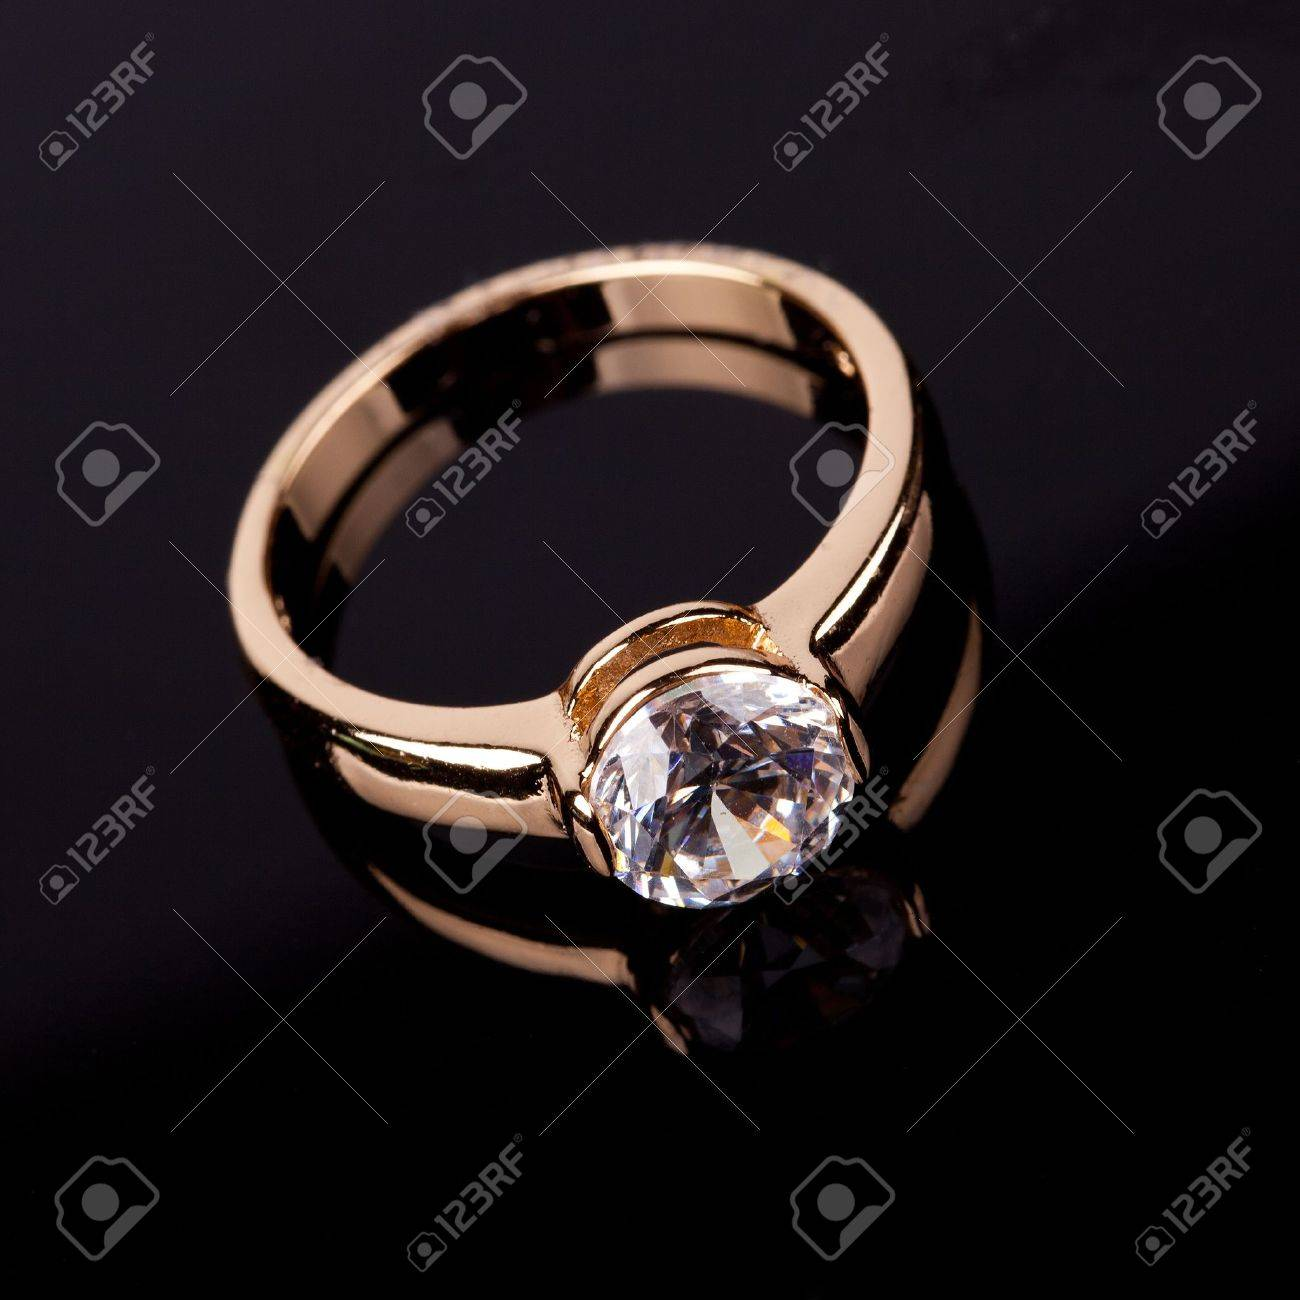 wedding ring with stone on black backrground Stock Photo - 12603935